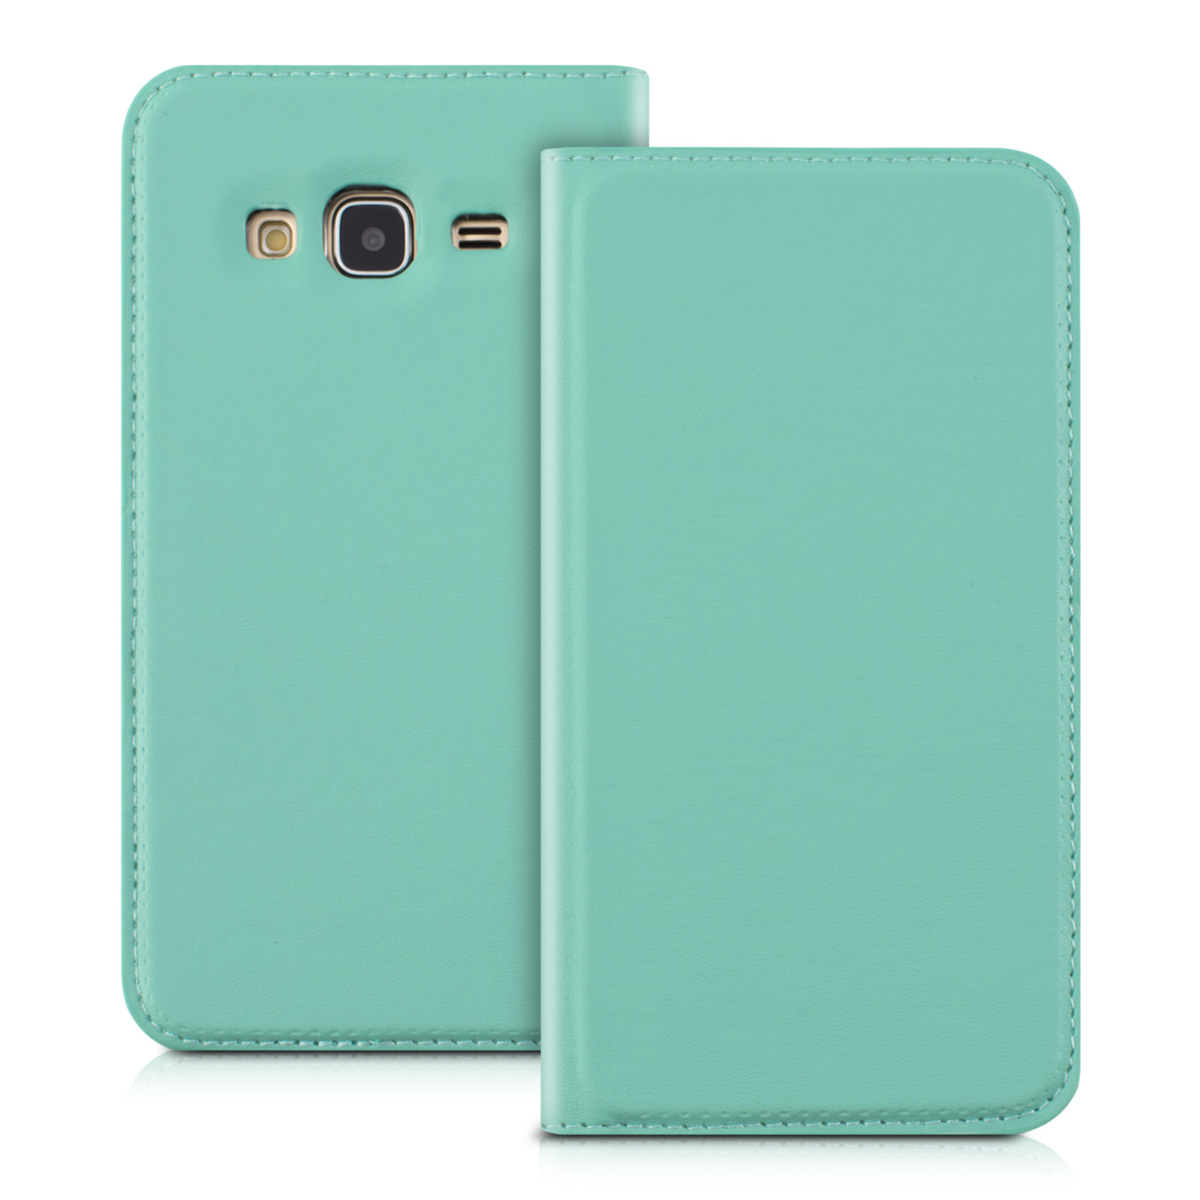 kwmobile flip cover for samsung galaxy j3 2016 duos case. Black Bedroom Furniture Sets. Home Design Ideas